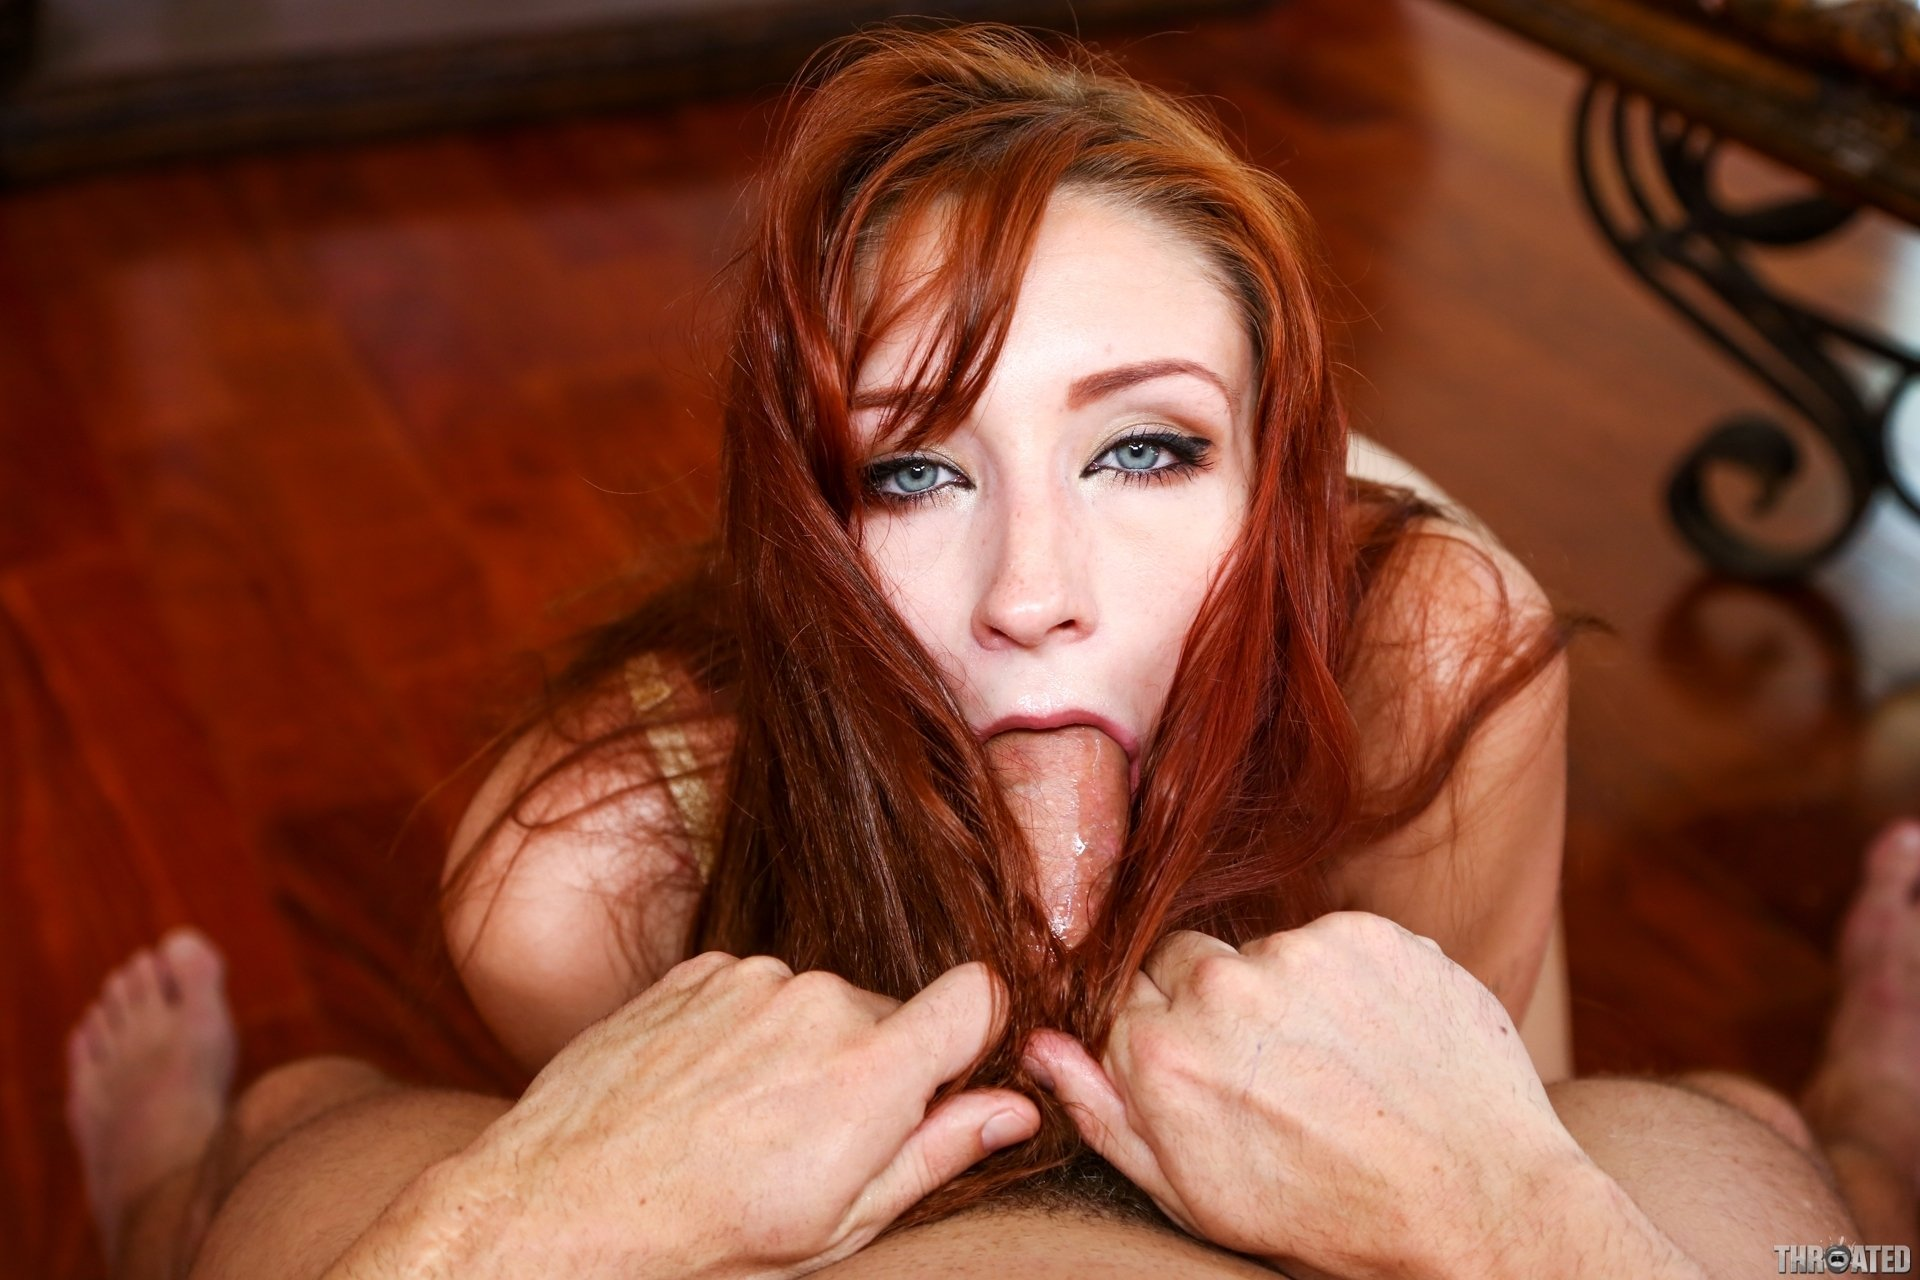 Daughter cheating blacked com